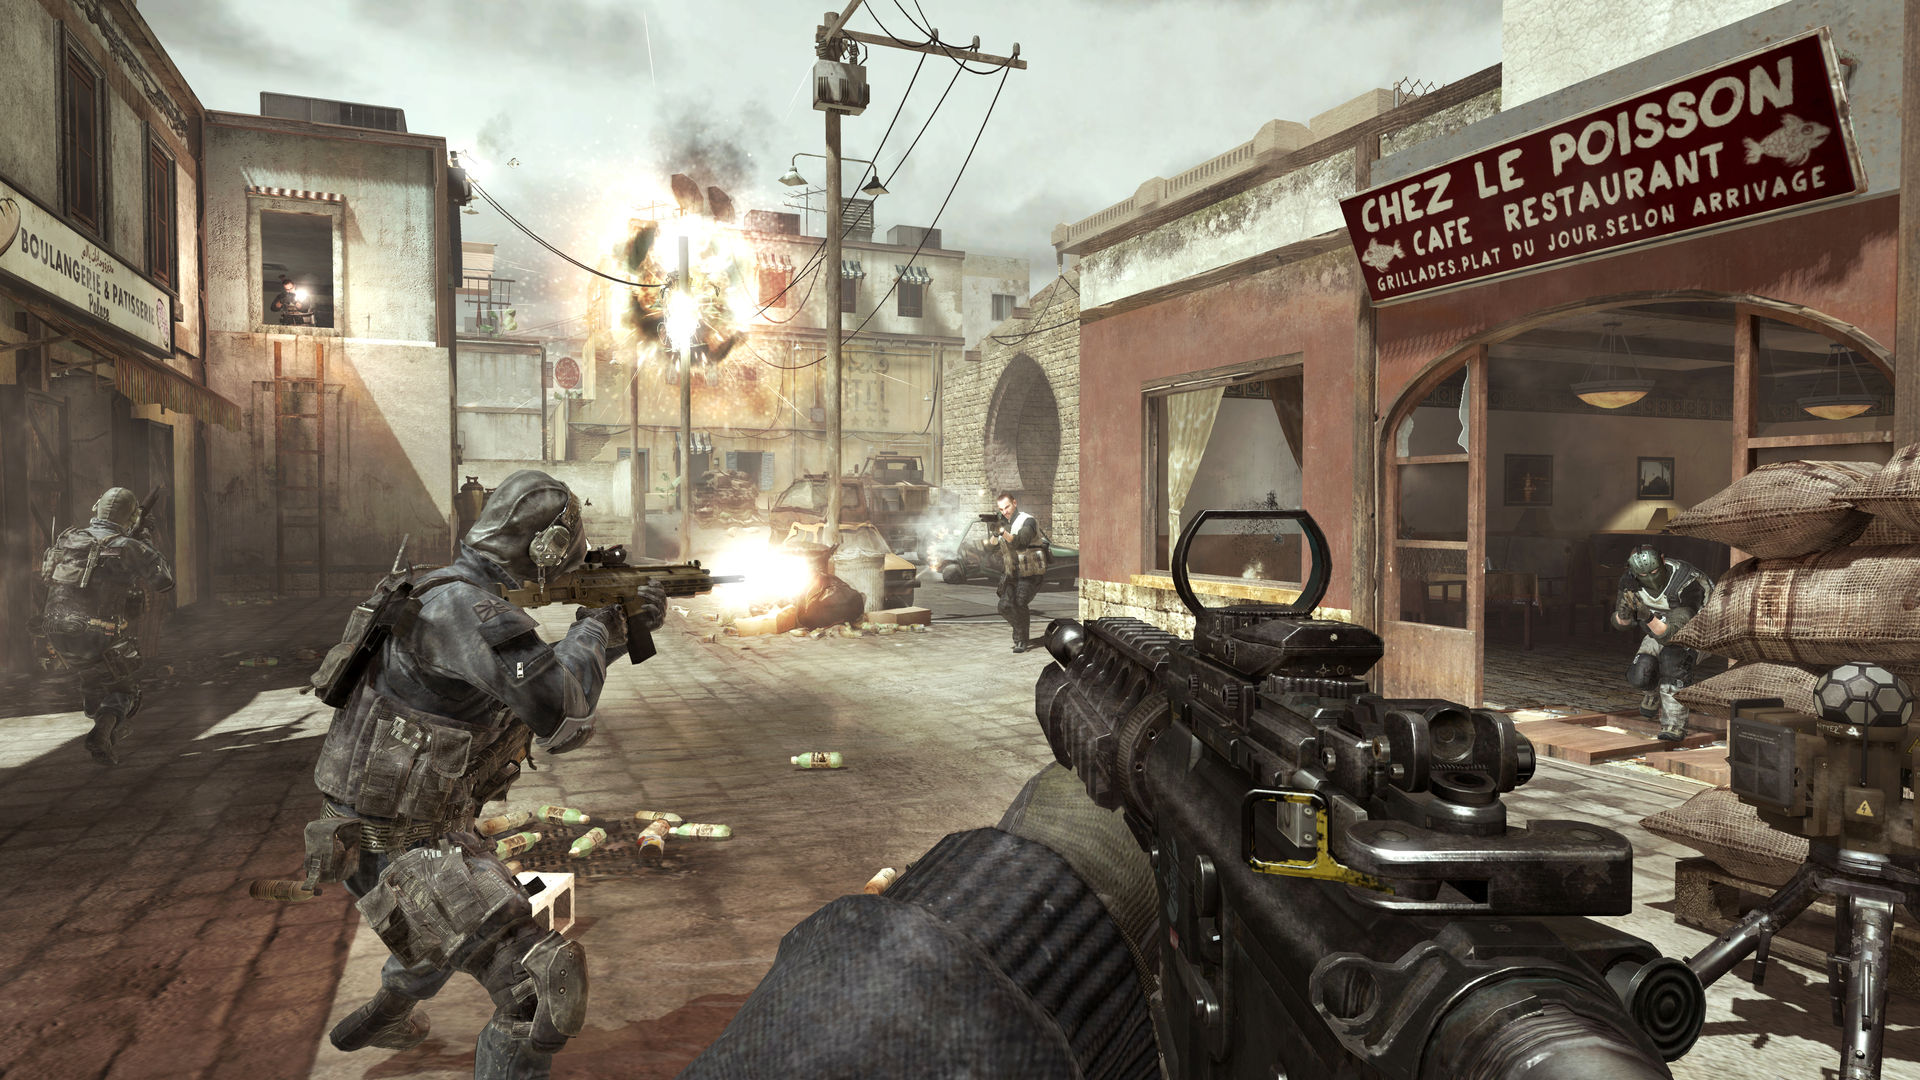 Link Tải Game Call Of Duty Modern Warfare 3 Miễn Phí